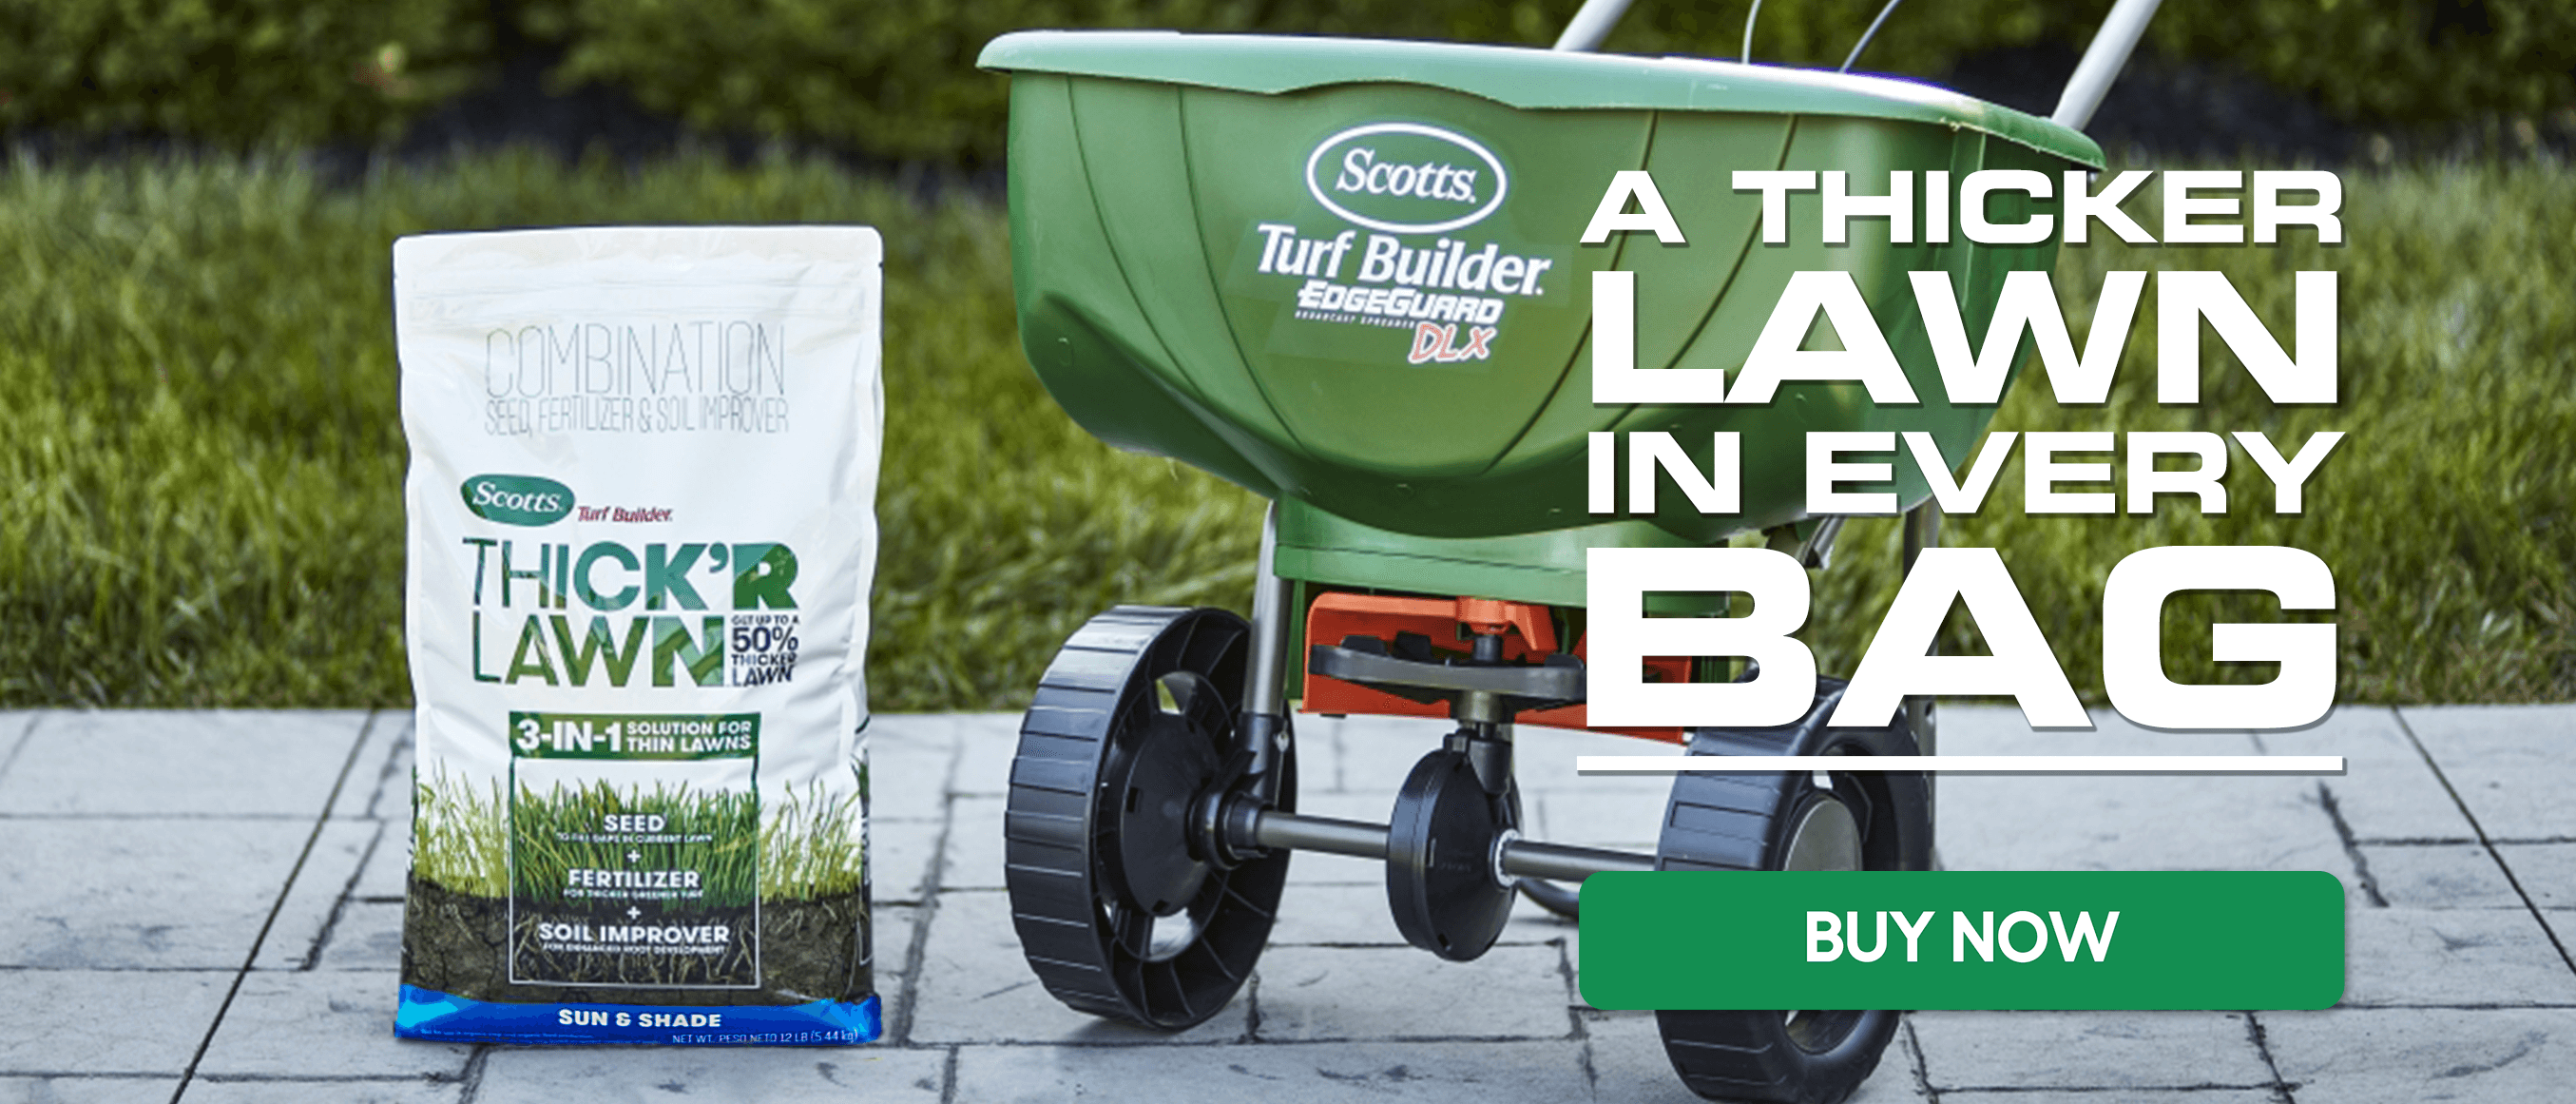 A Thicker Lawn in Every Bag - Thick 'R Lawn - Buy Now